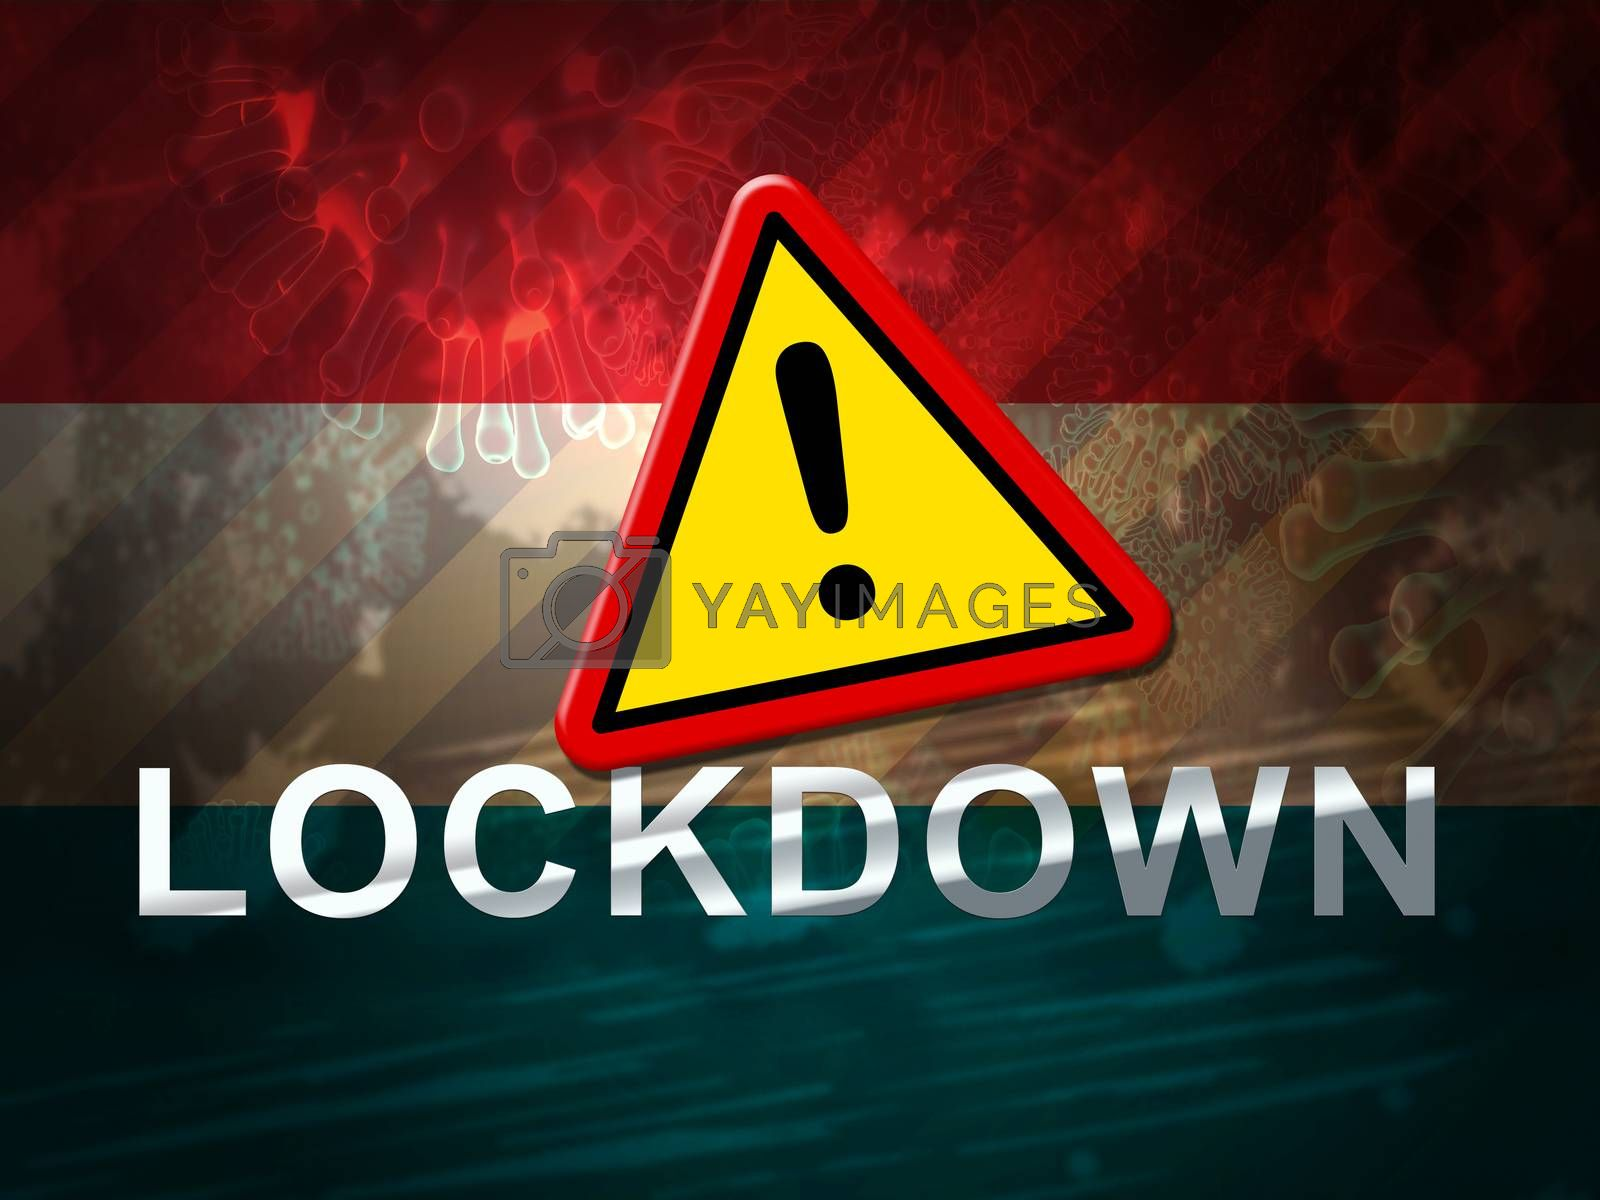 Luxembourg lockdown sign against coronavirus covid-19 - 3d Illus by stuartmiles